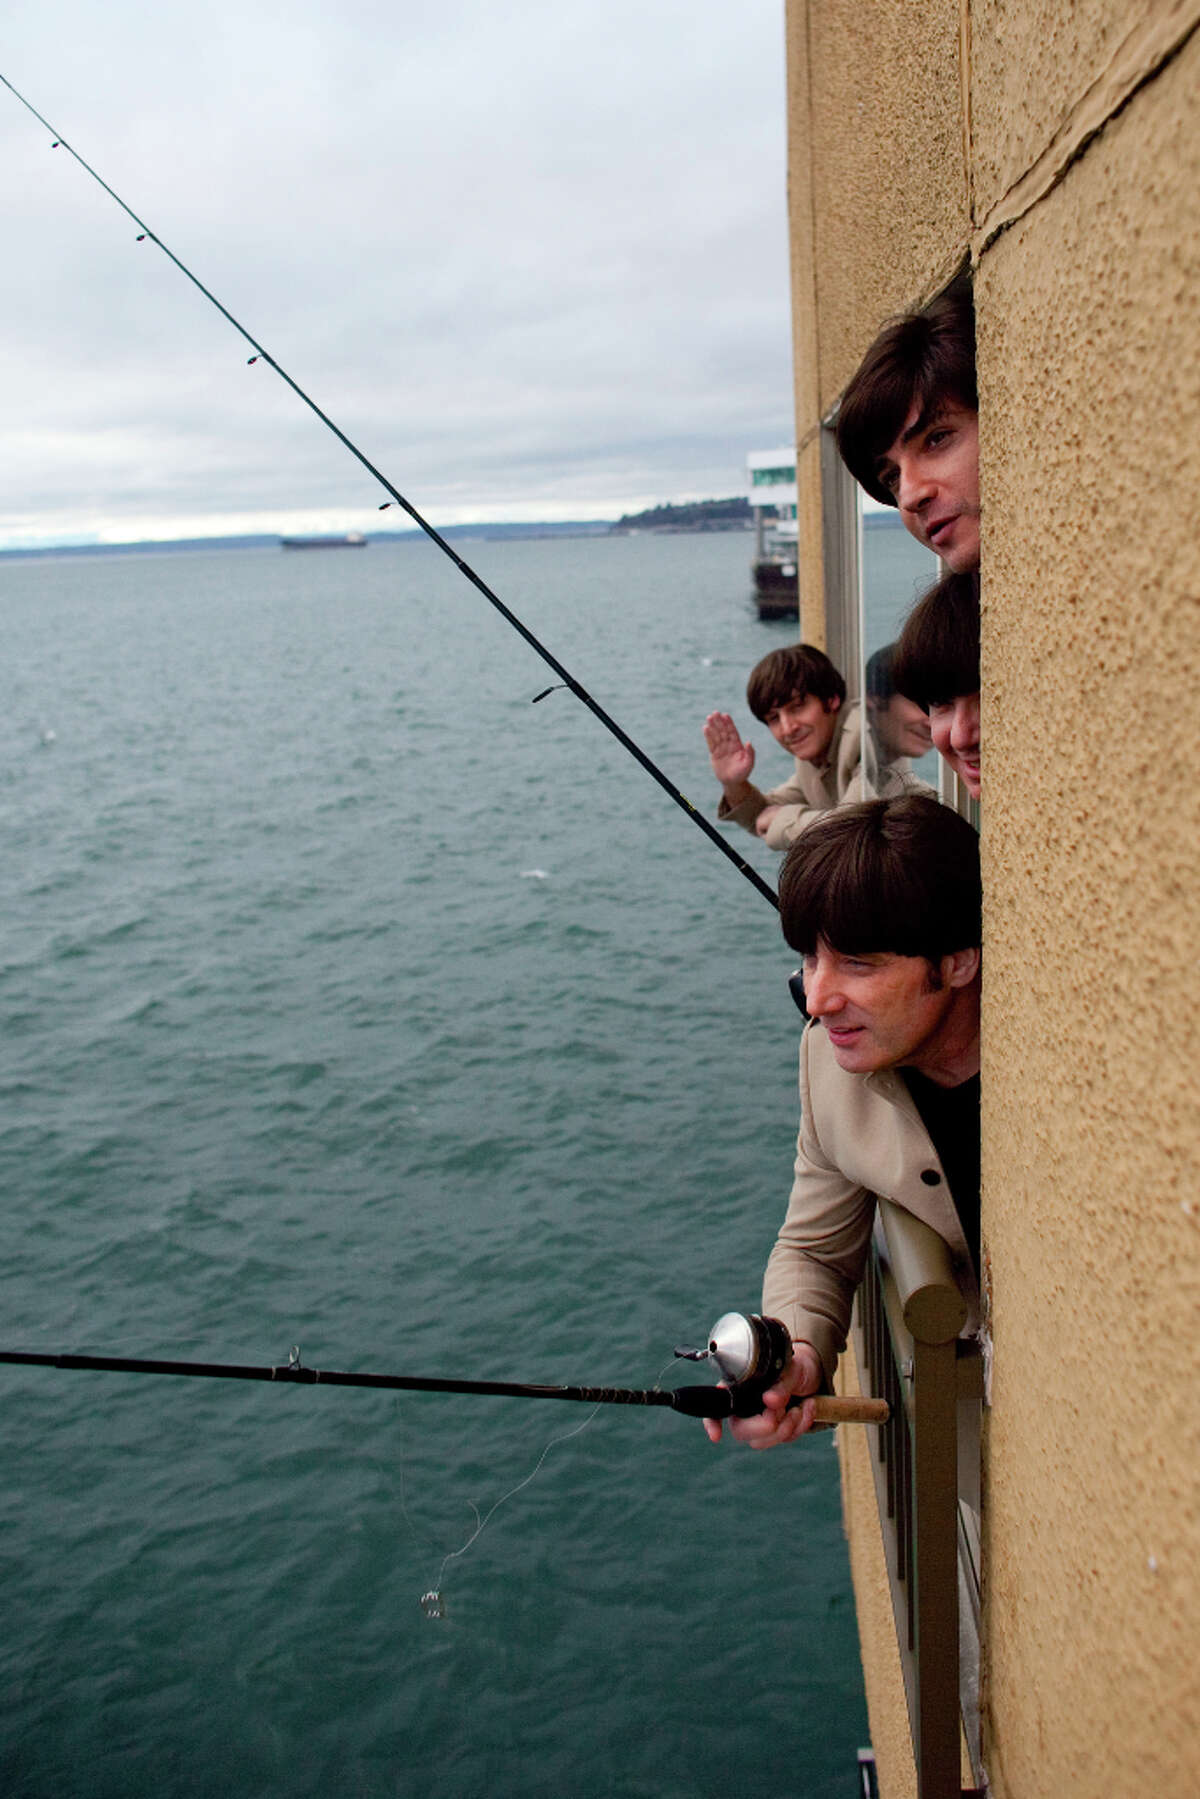 Members of Rain, a Beatles tribute band, reenact an iconic photograph of the Beatles on Thursday, Jan. 31, 2013, at Seattle's Edgewater Hotel. The band, which performed its tribute to the Beatles on Broadway, will be at Seattle's Moore Theatre for shows until Feb. 3.